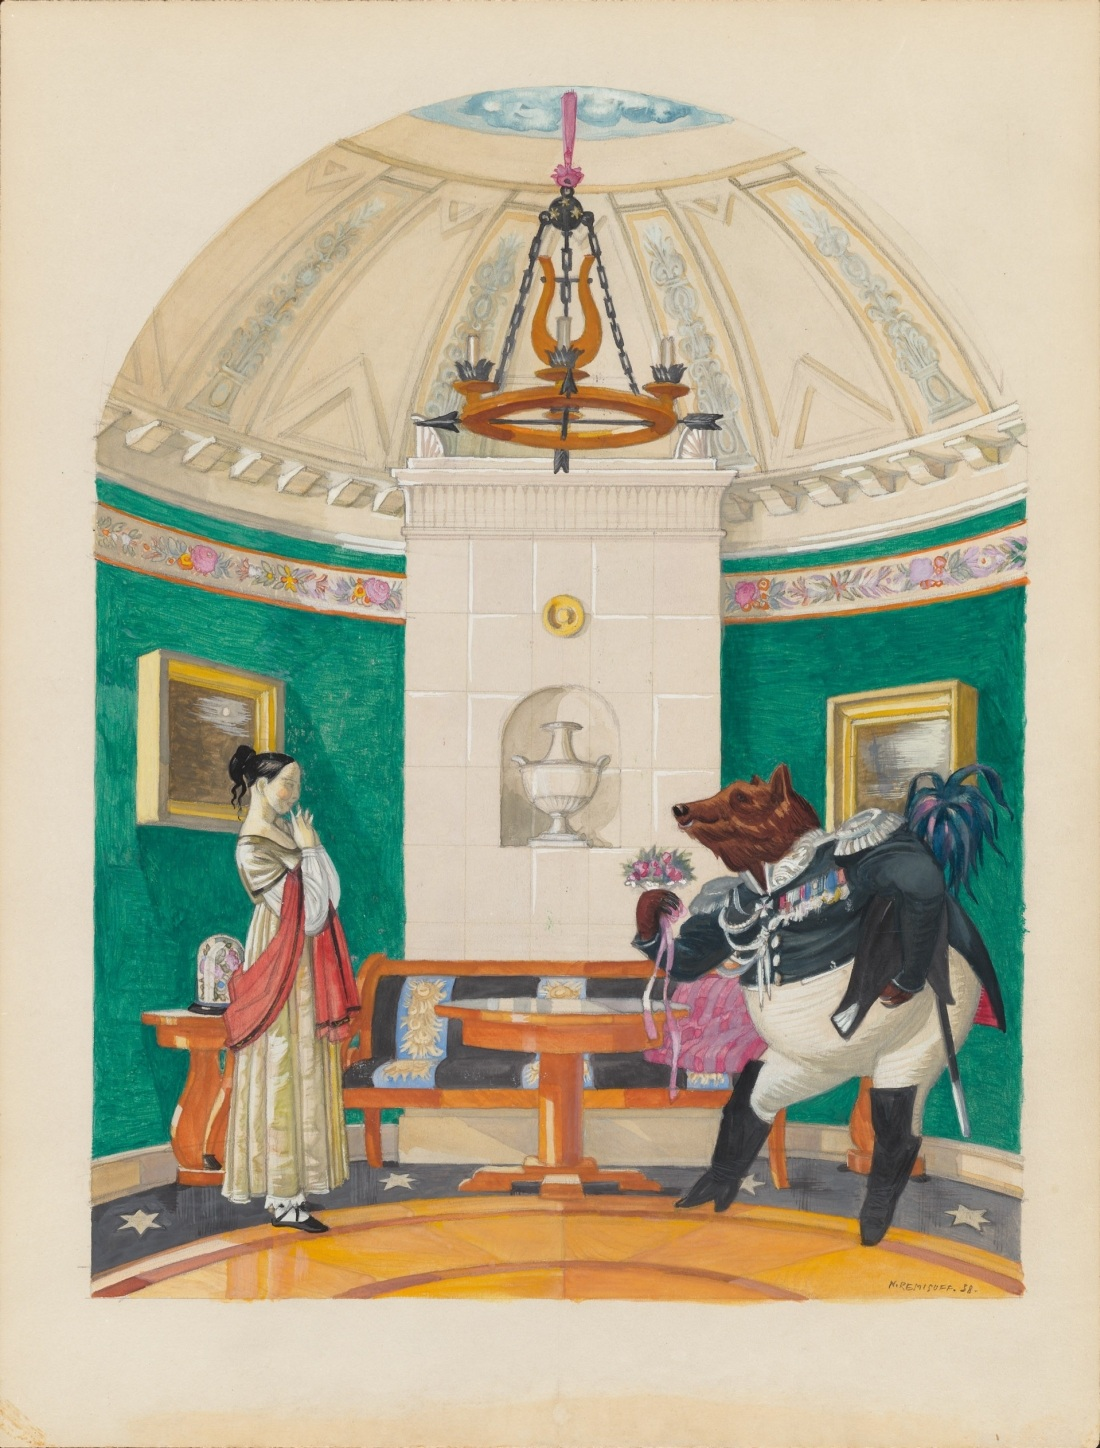 ballet scene design: bear in uniform with lady